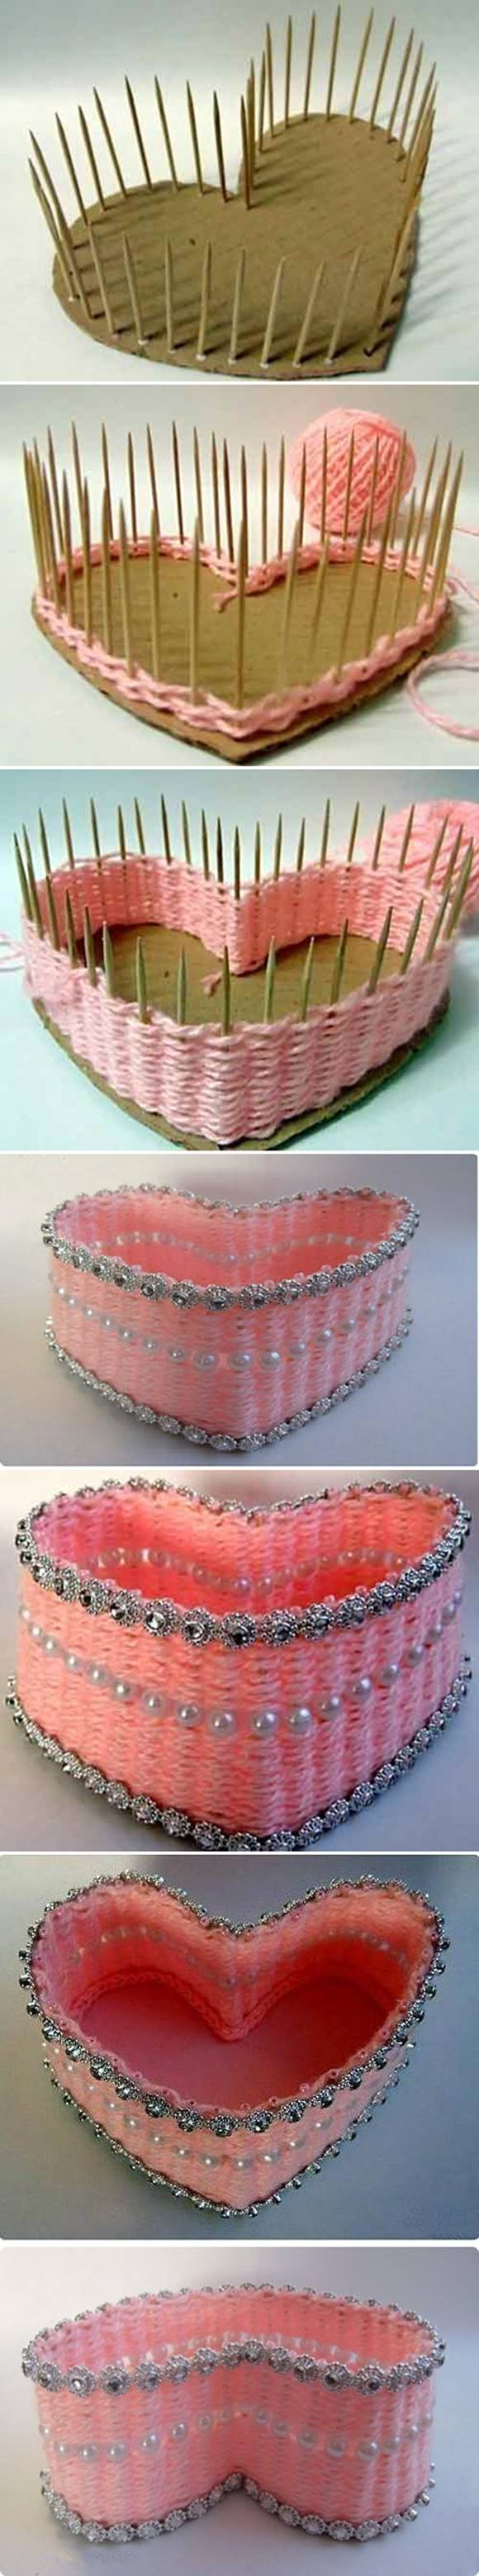 How to DIY Yarn Woven Heart Shaped Basket